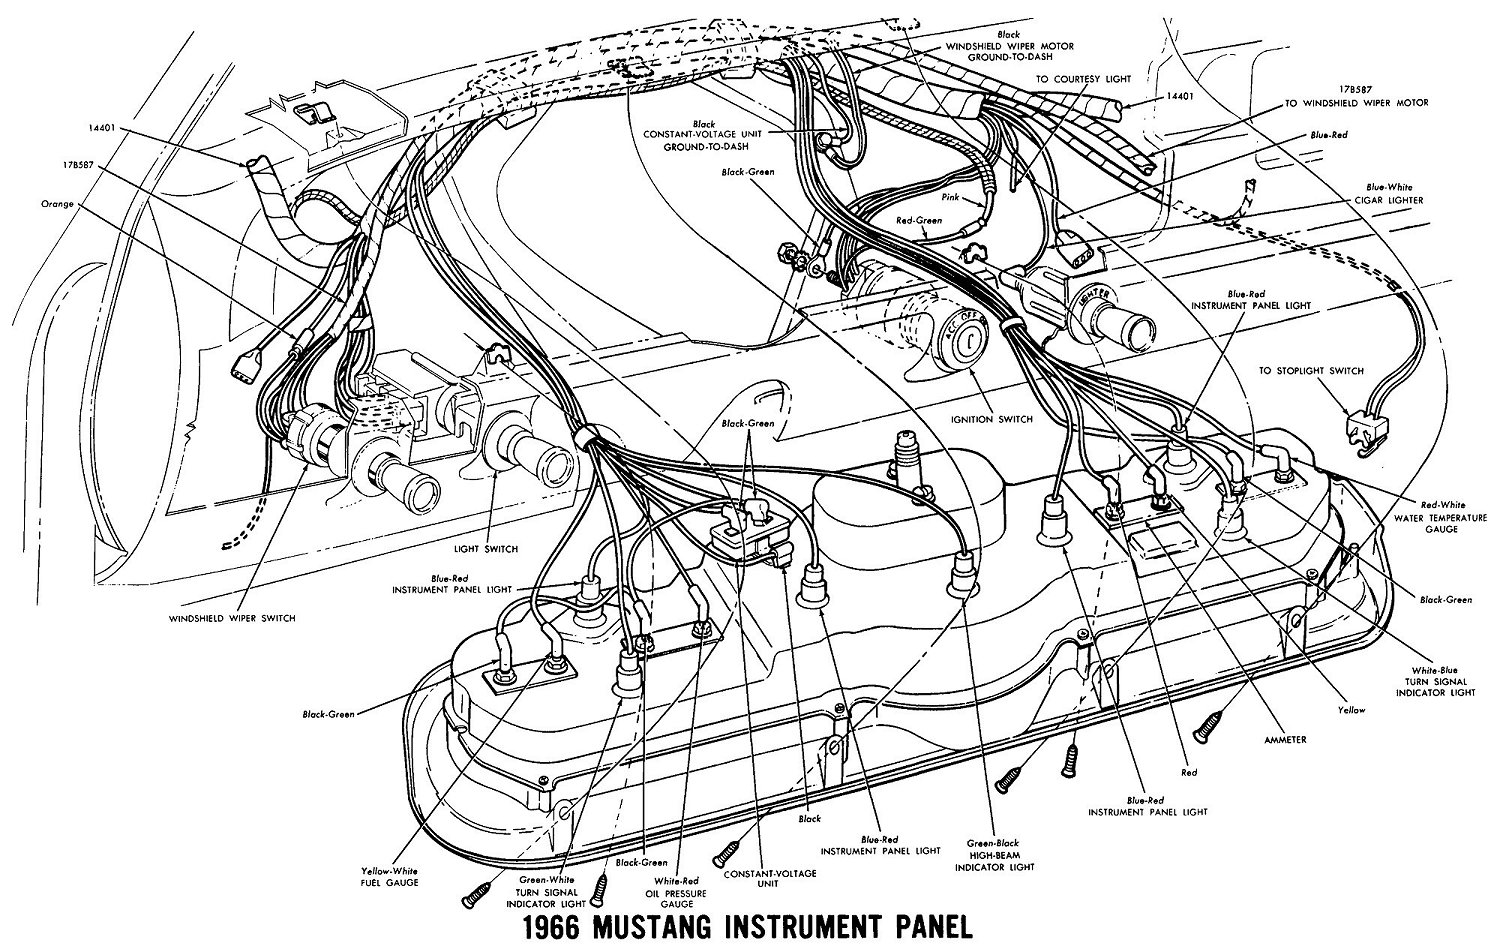 [DVZP_7254]   1966 Mustang Wiring Diagrams - Average Joe Restoration | 1966 Mustang Color Wiring Diagram |  | Average Joe Restoration